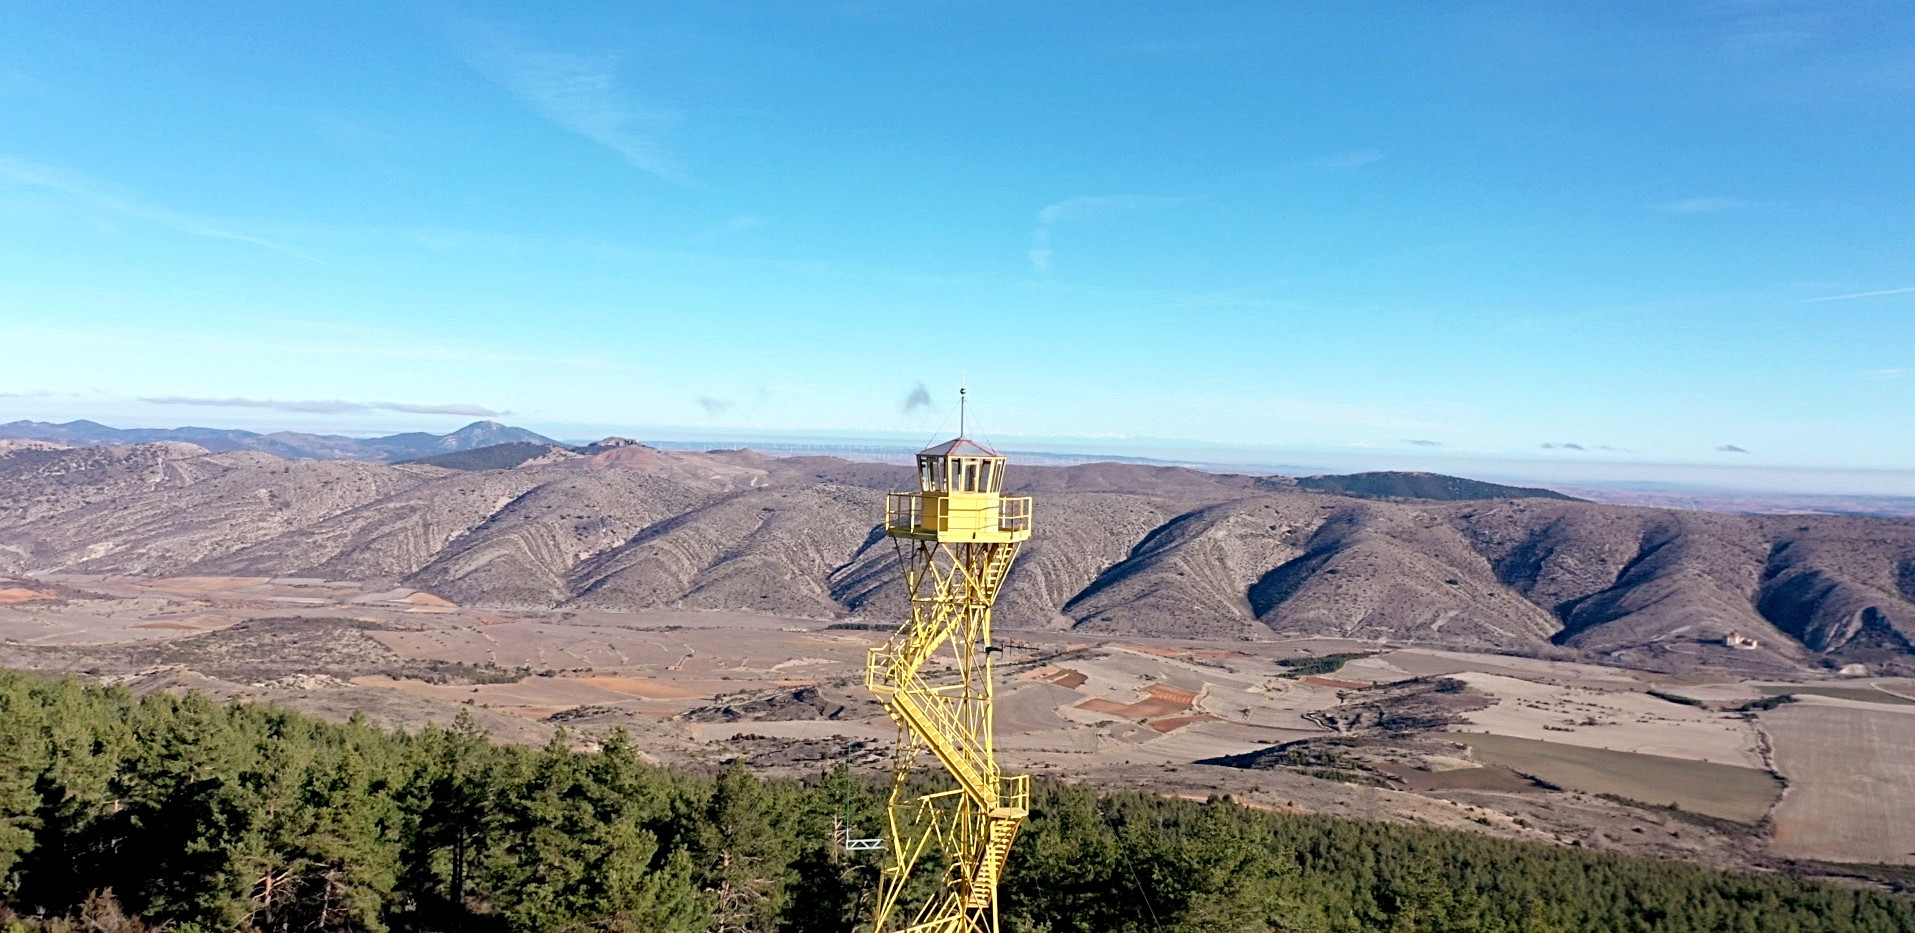 Torre incendios / Fire tower